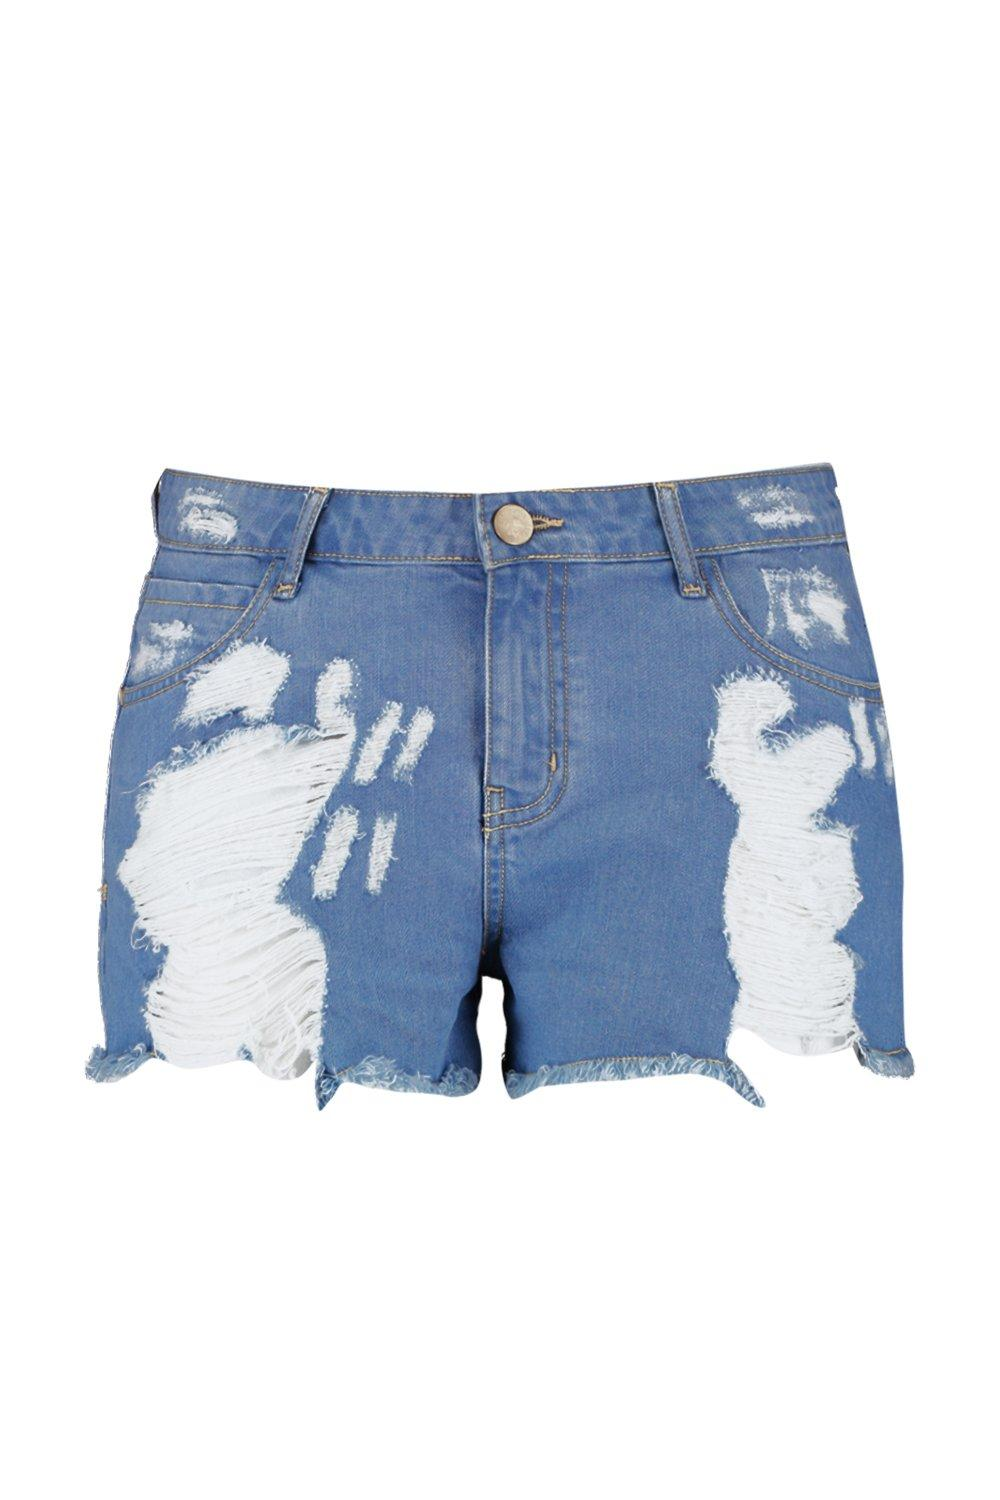 Short Denim Plus blue Distressed Mid Wash xtzqwIYq